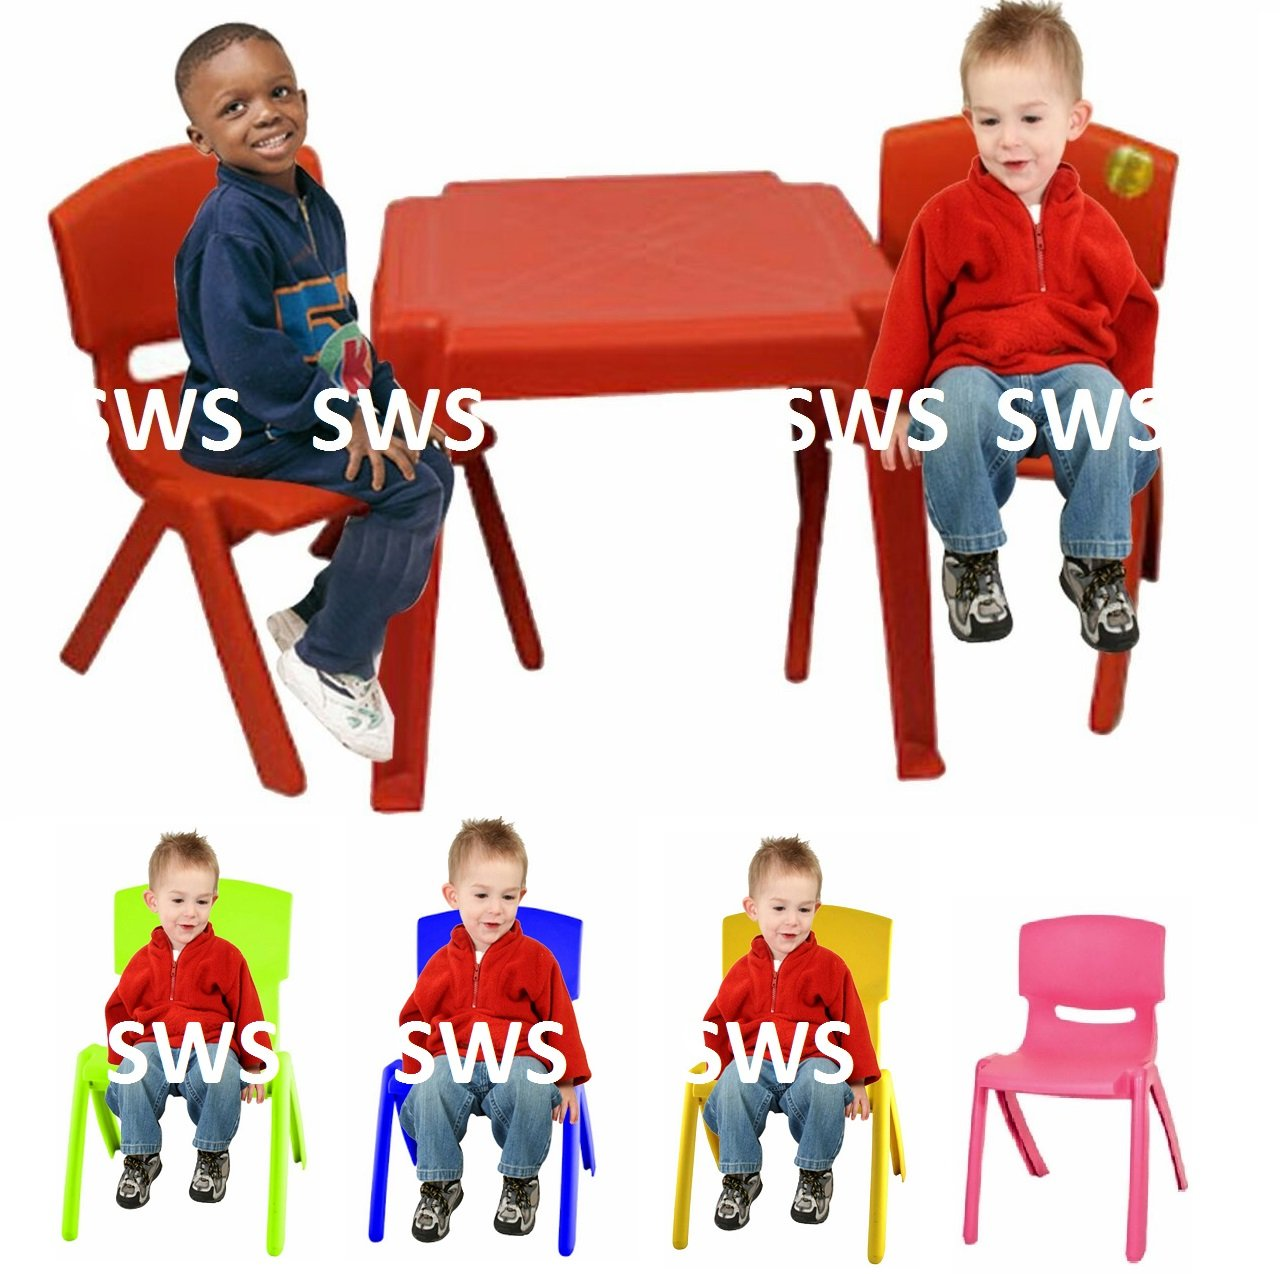 Childrens Kids Plastic Garden Outdoor Or Indoor Table and 2 Chairs Set For Boys Or Girls Pink Blue Yellow Green Red TOYO